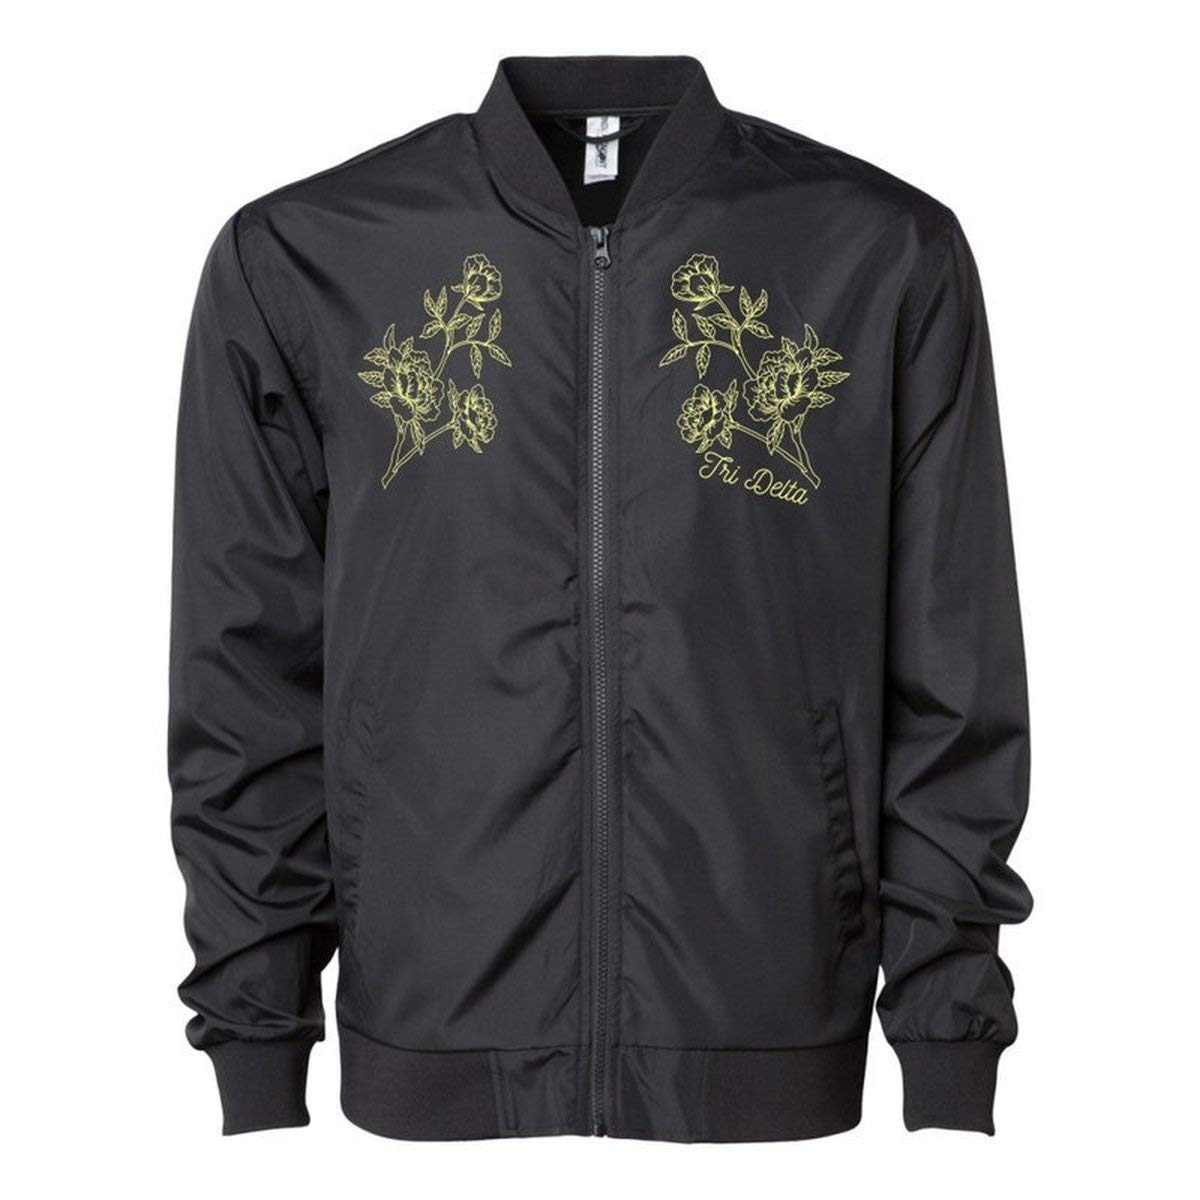 Tri Delta Sorority Bomber Jacket